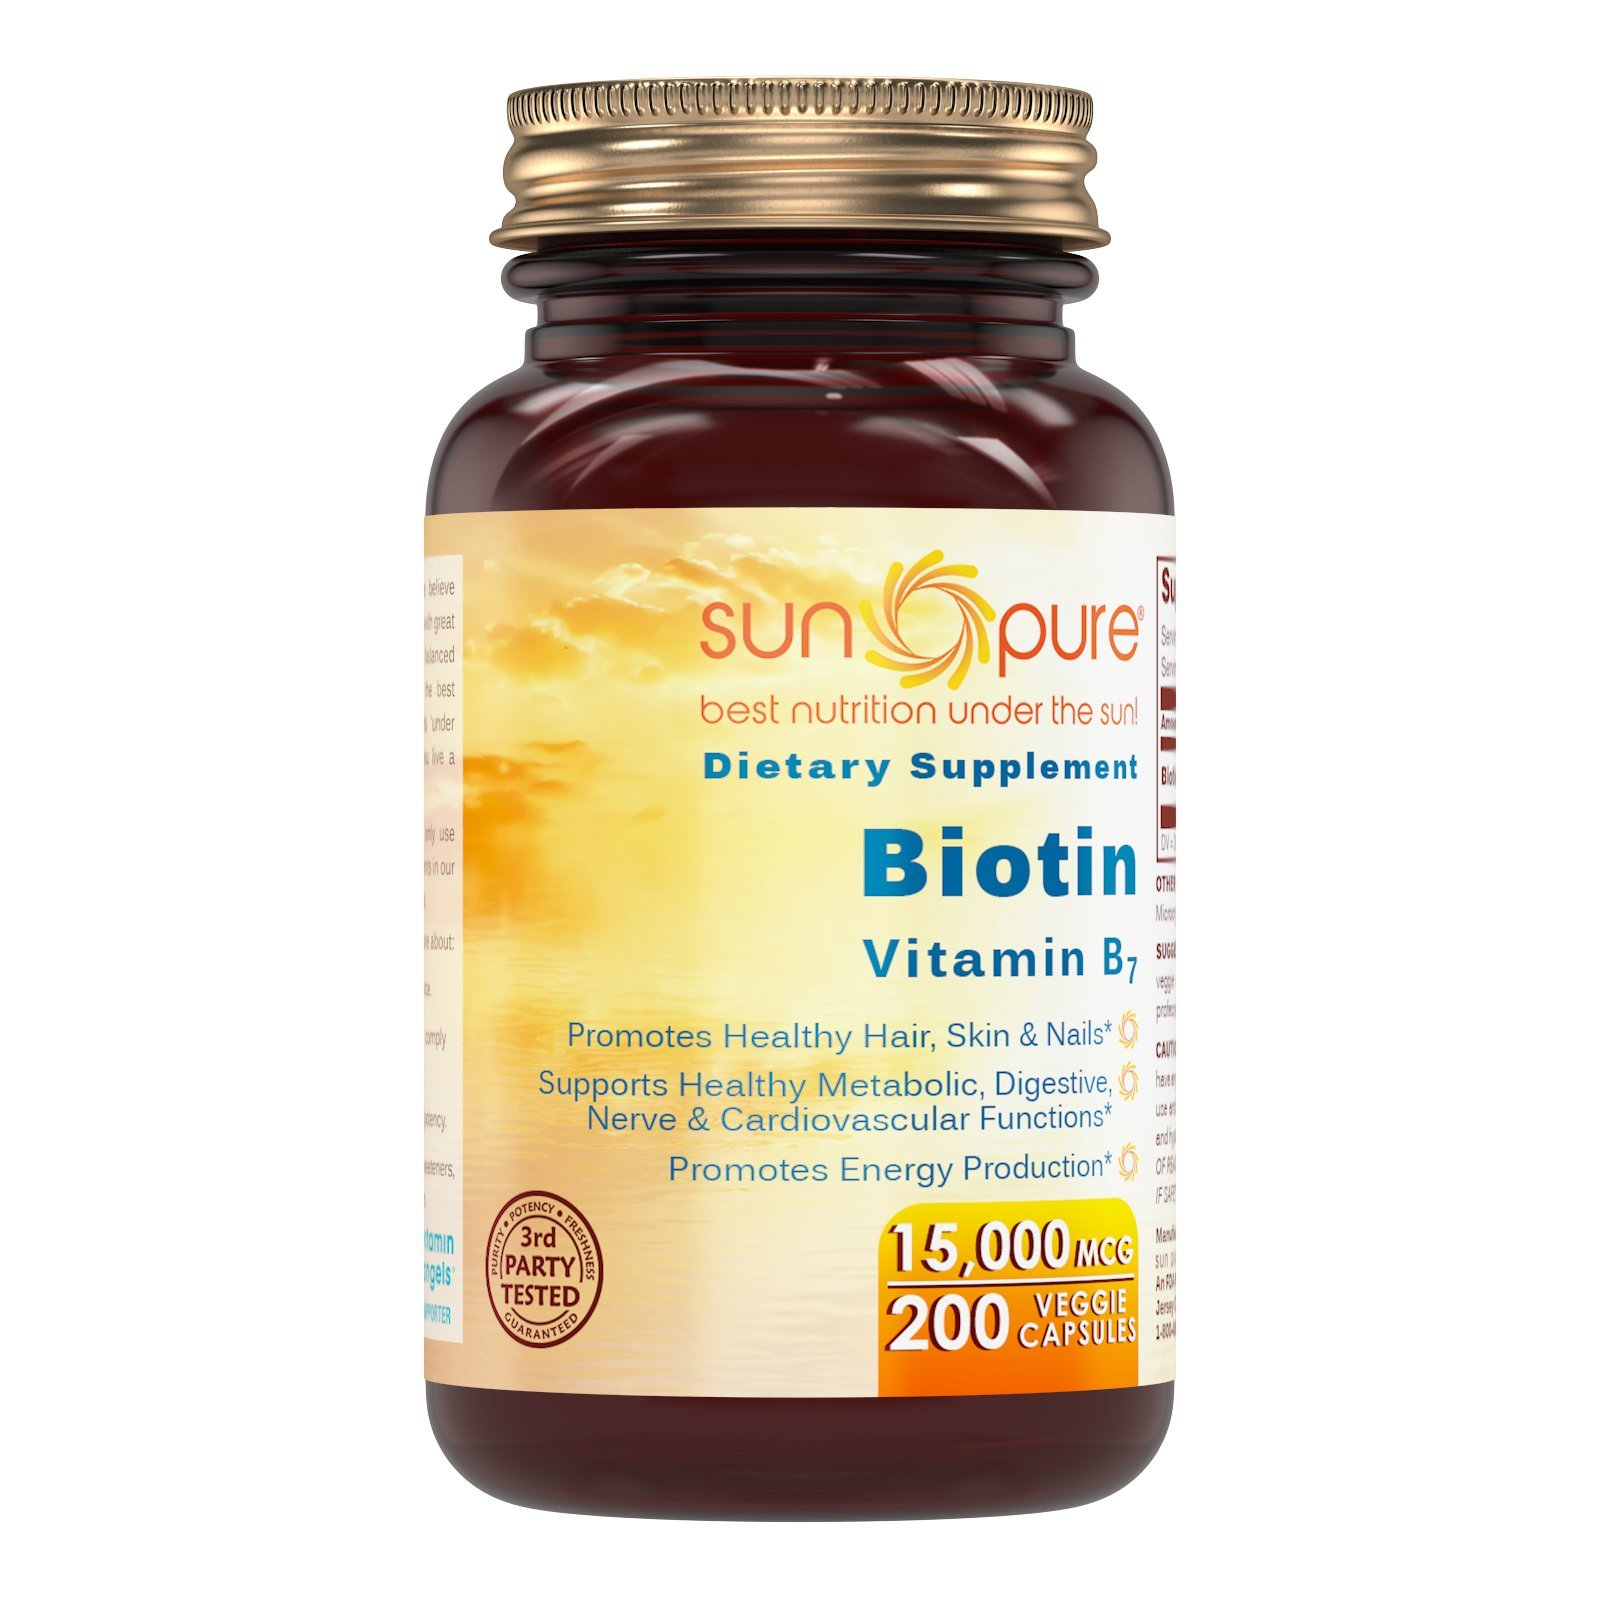 Sun Pure Premium Quality Biotin 15,000 Mcg, Veggie Capsules Glass Bottle Per Bottle - Promotes Healthy Hair, Skin & Nails - Promotes Energy Production. (200 Count)